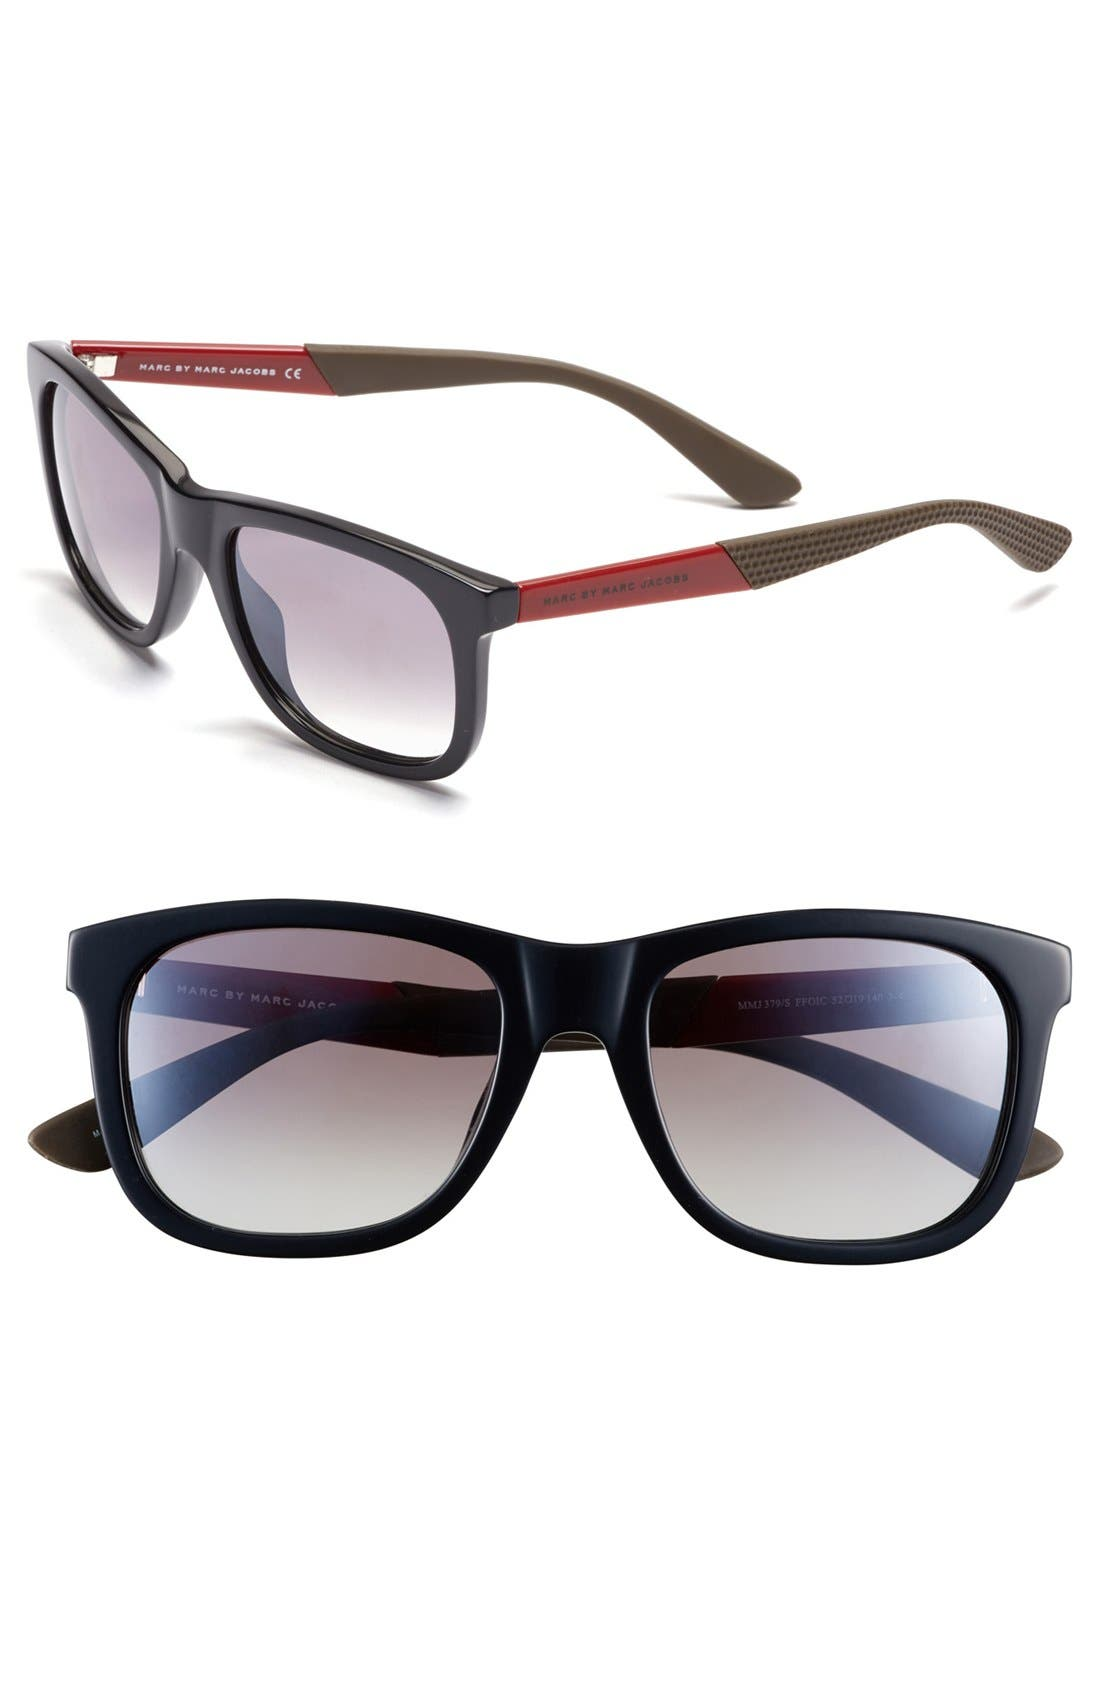 Main Image - MARC BY MARC JACOBS 52mm Retro Sunglasses